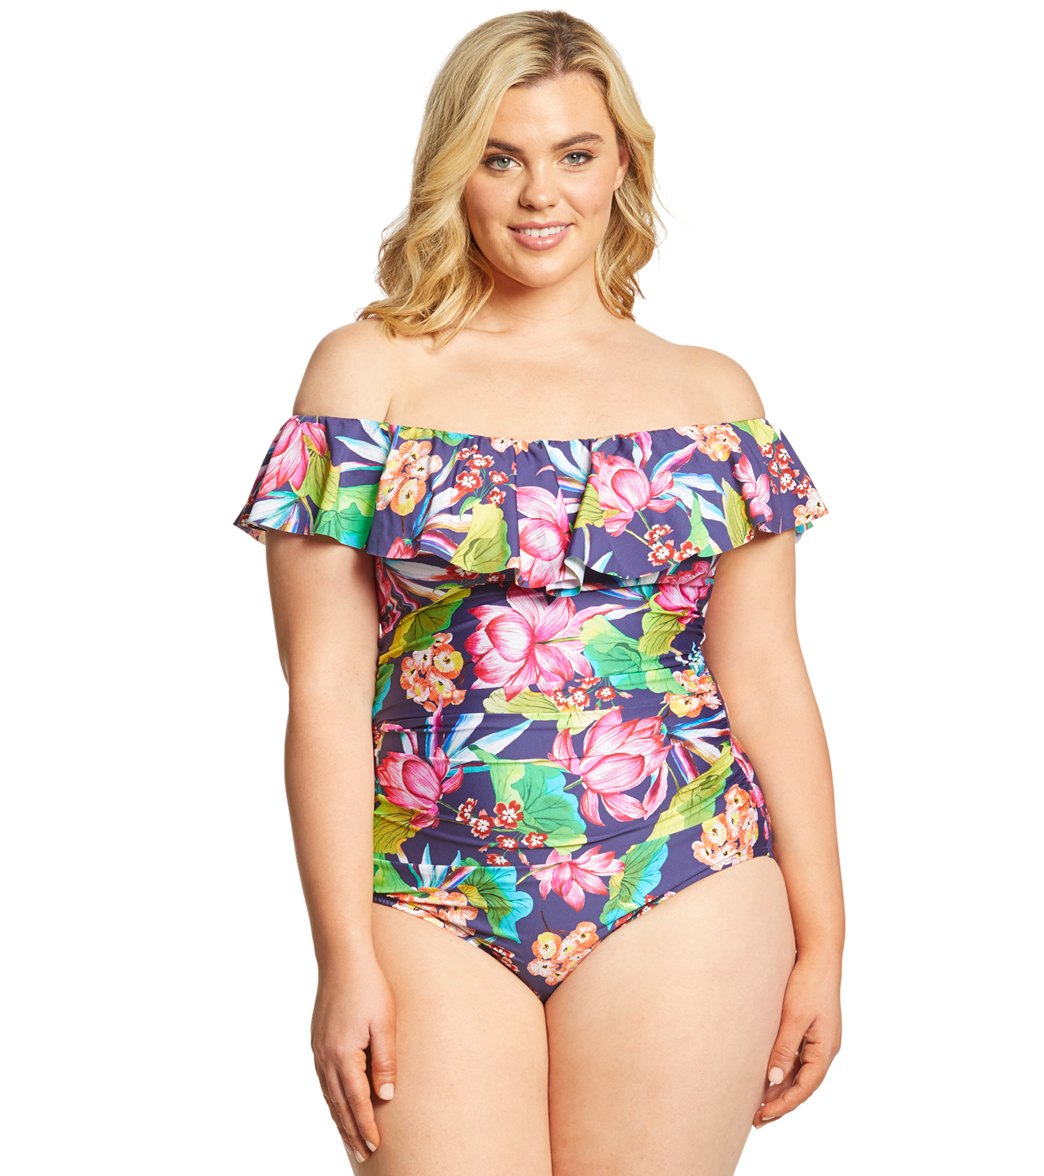 264ecf6d2c107 La Blanca Plus Size Bora Bora Off The Shoulder One Piece Swimsuit at  SwimOutlet.com - Free Shipping